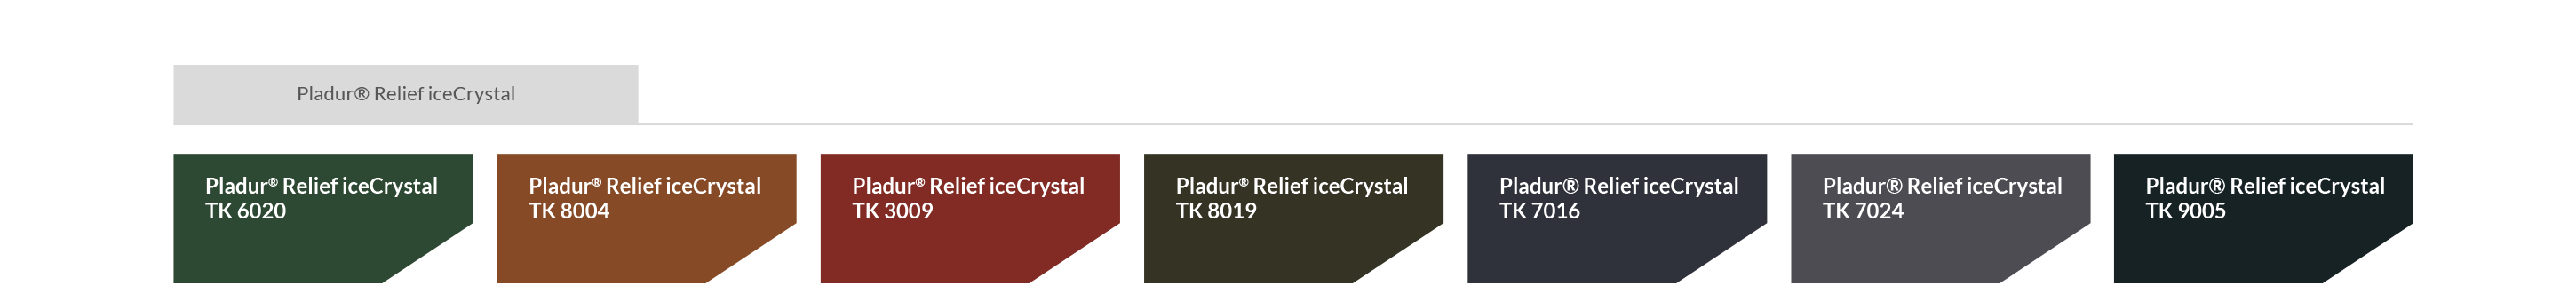 Pladur Relief Ice Crystal